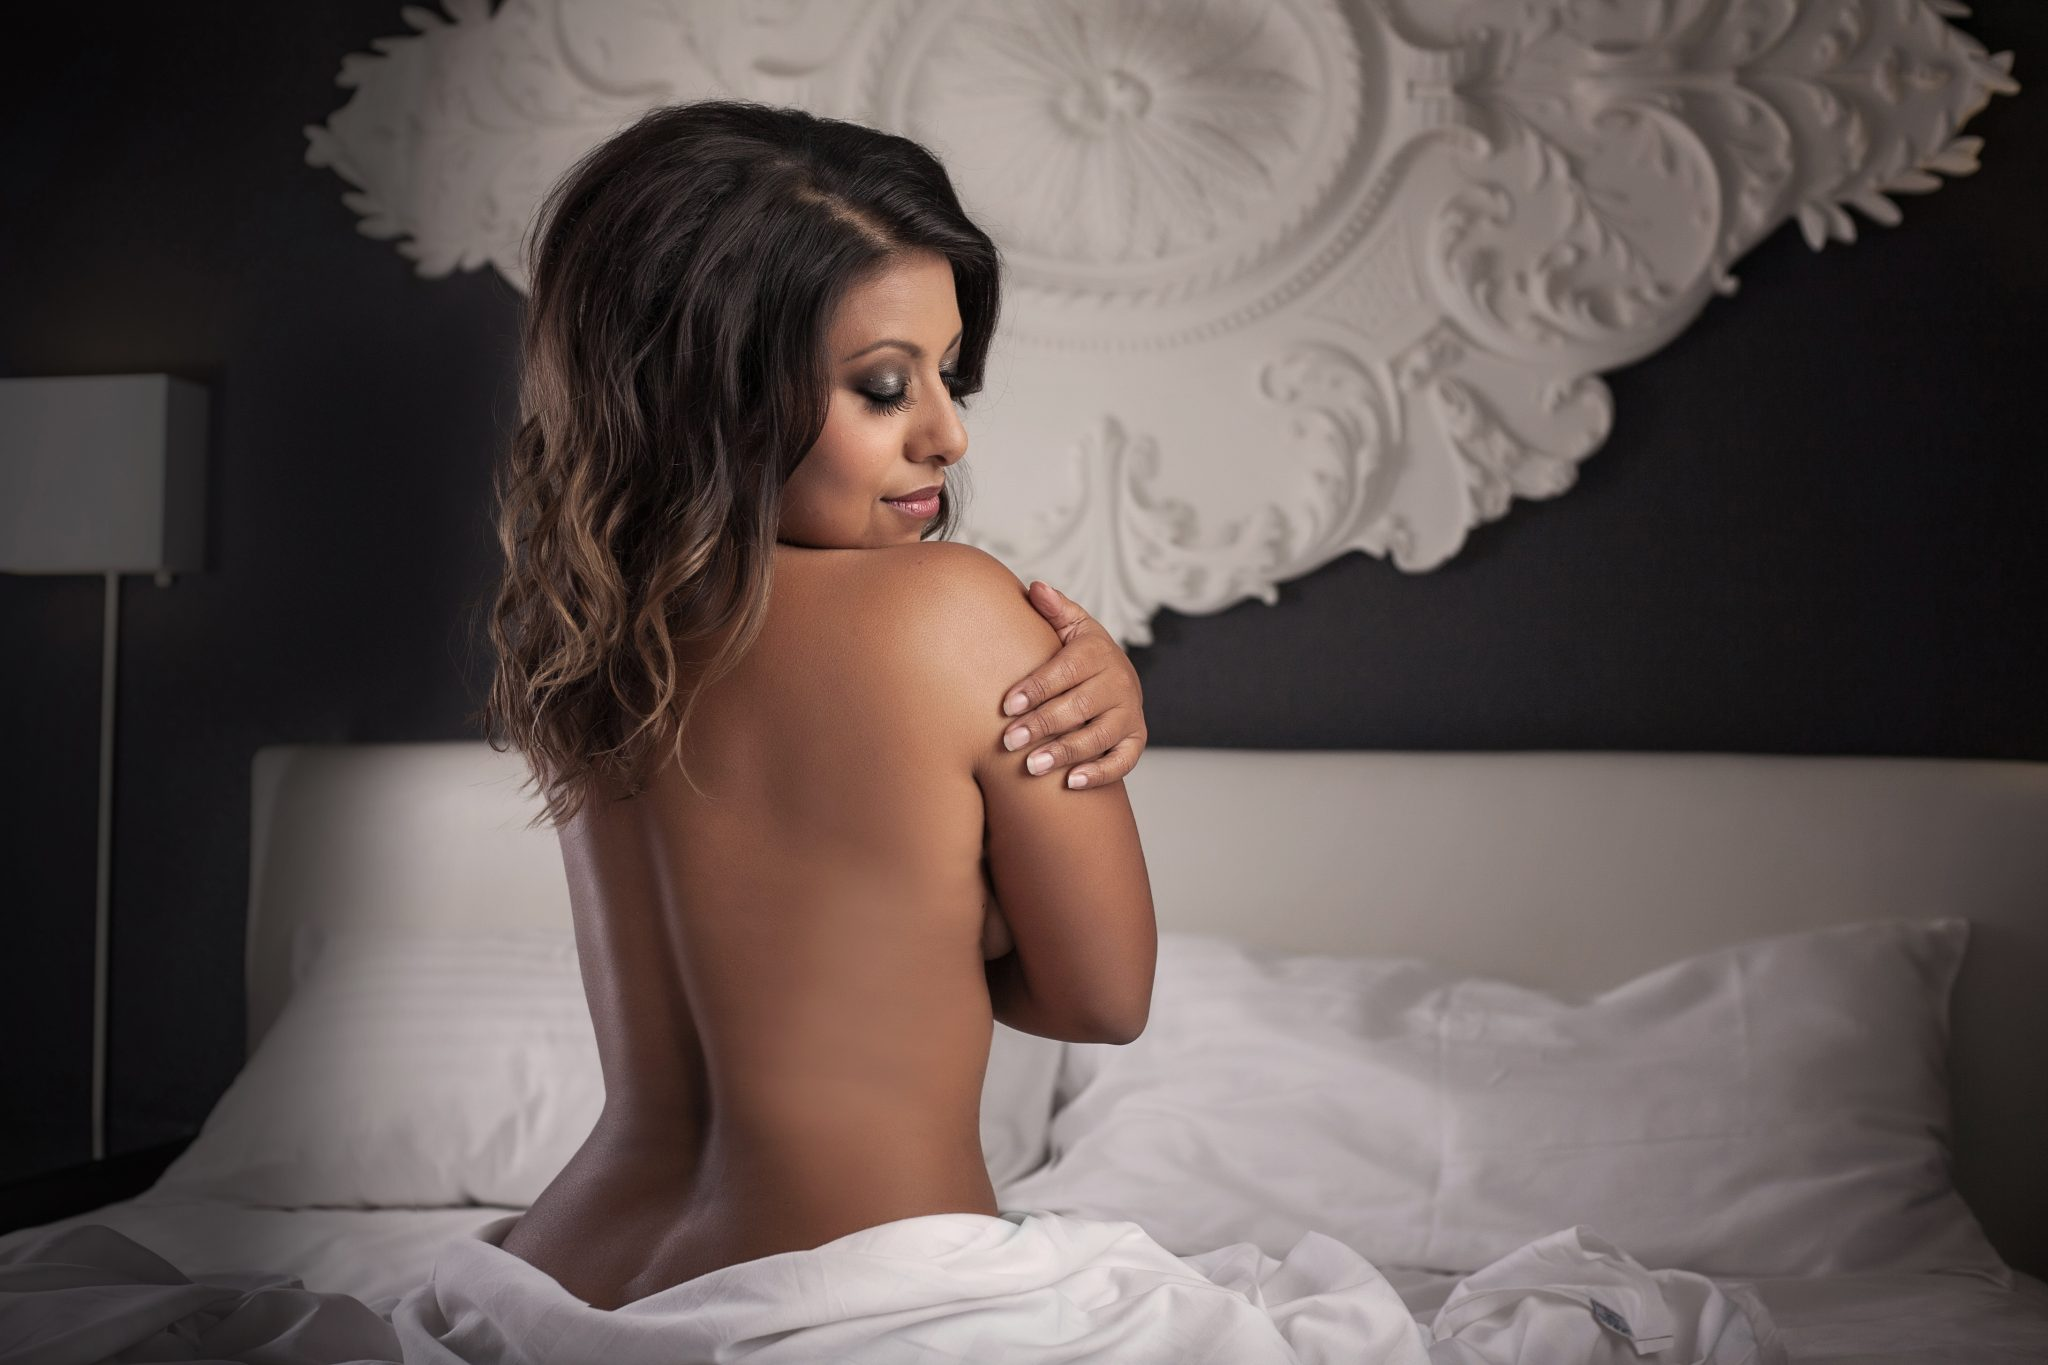 A boudoir photography session can be a great expression of self love.